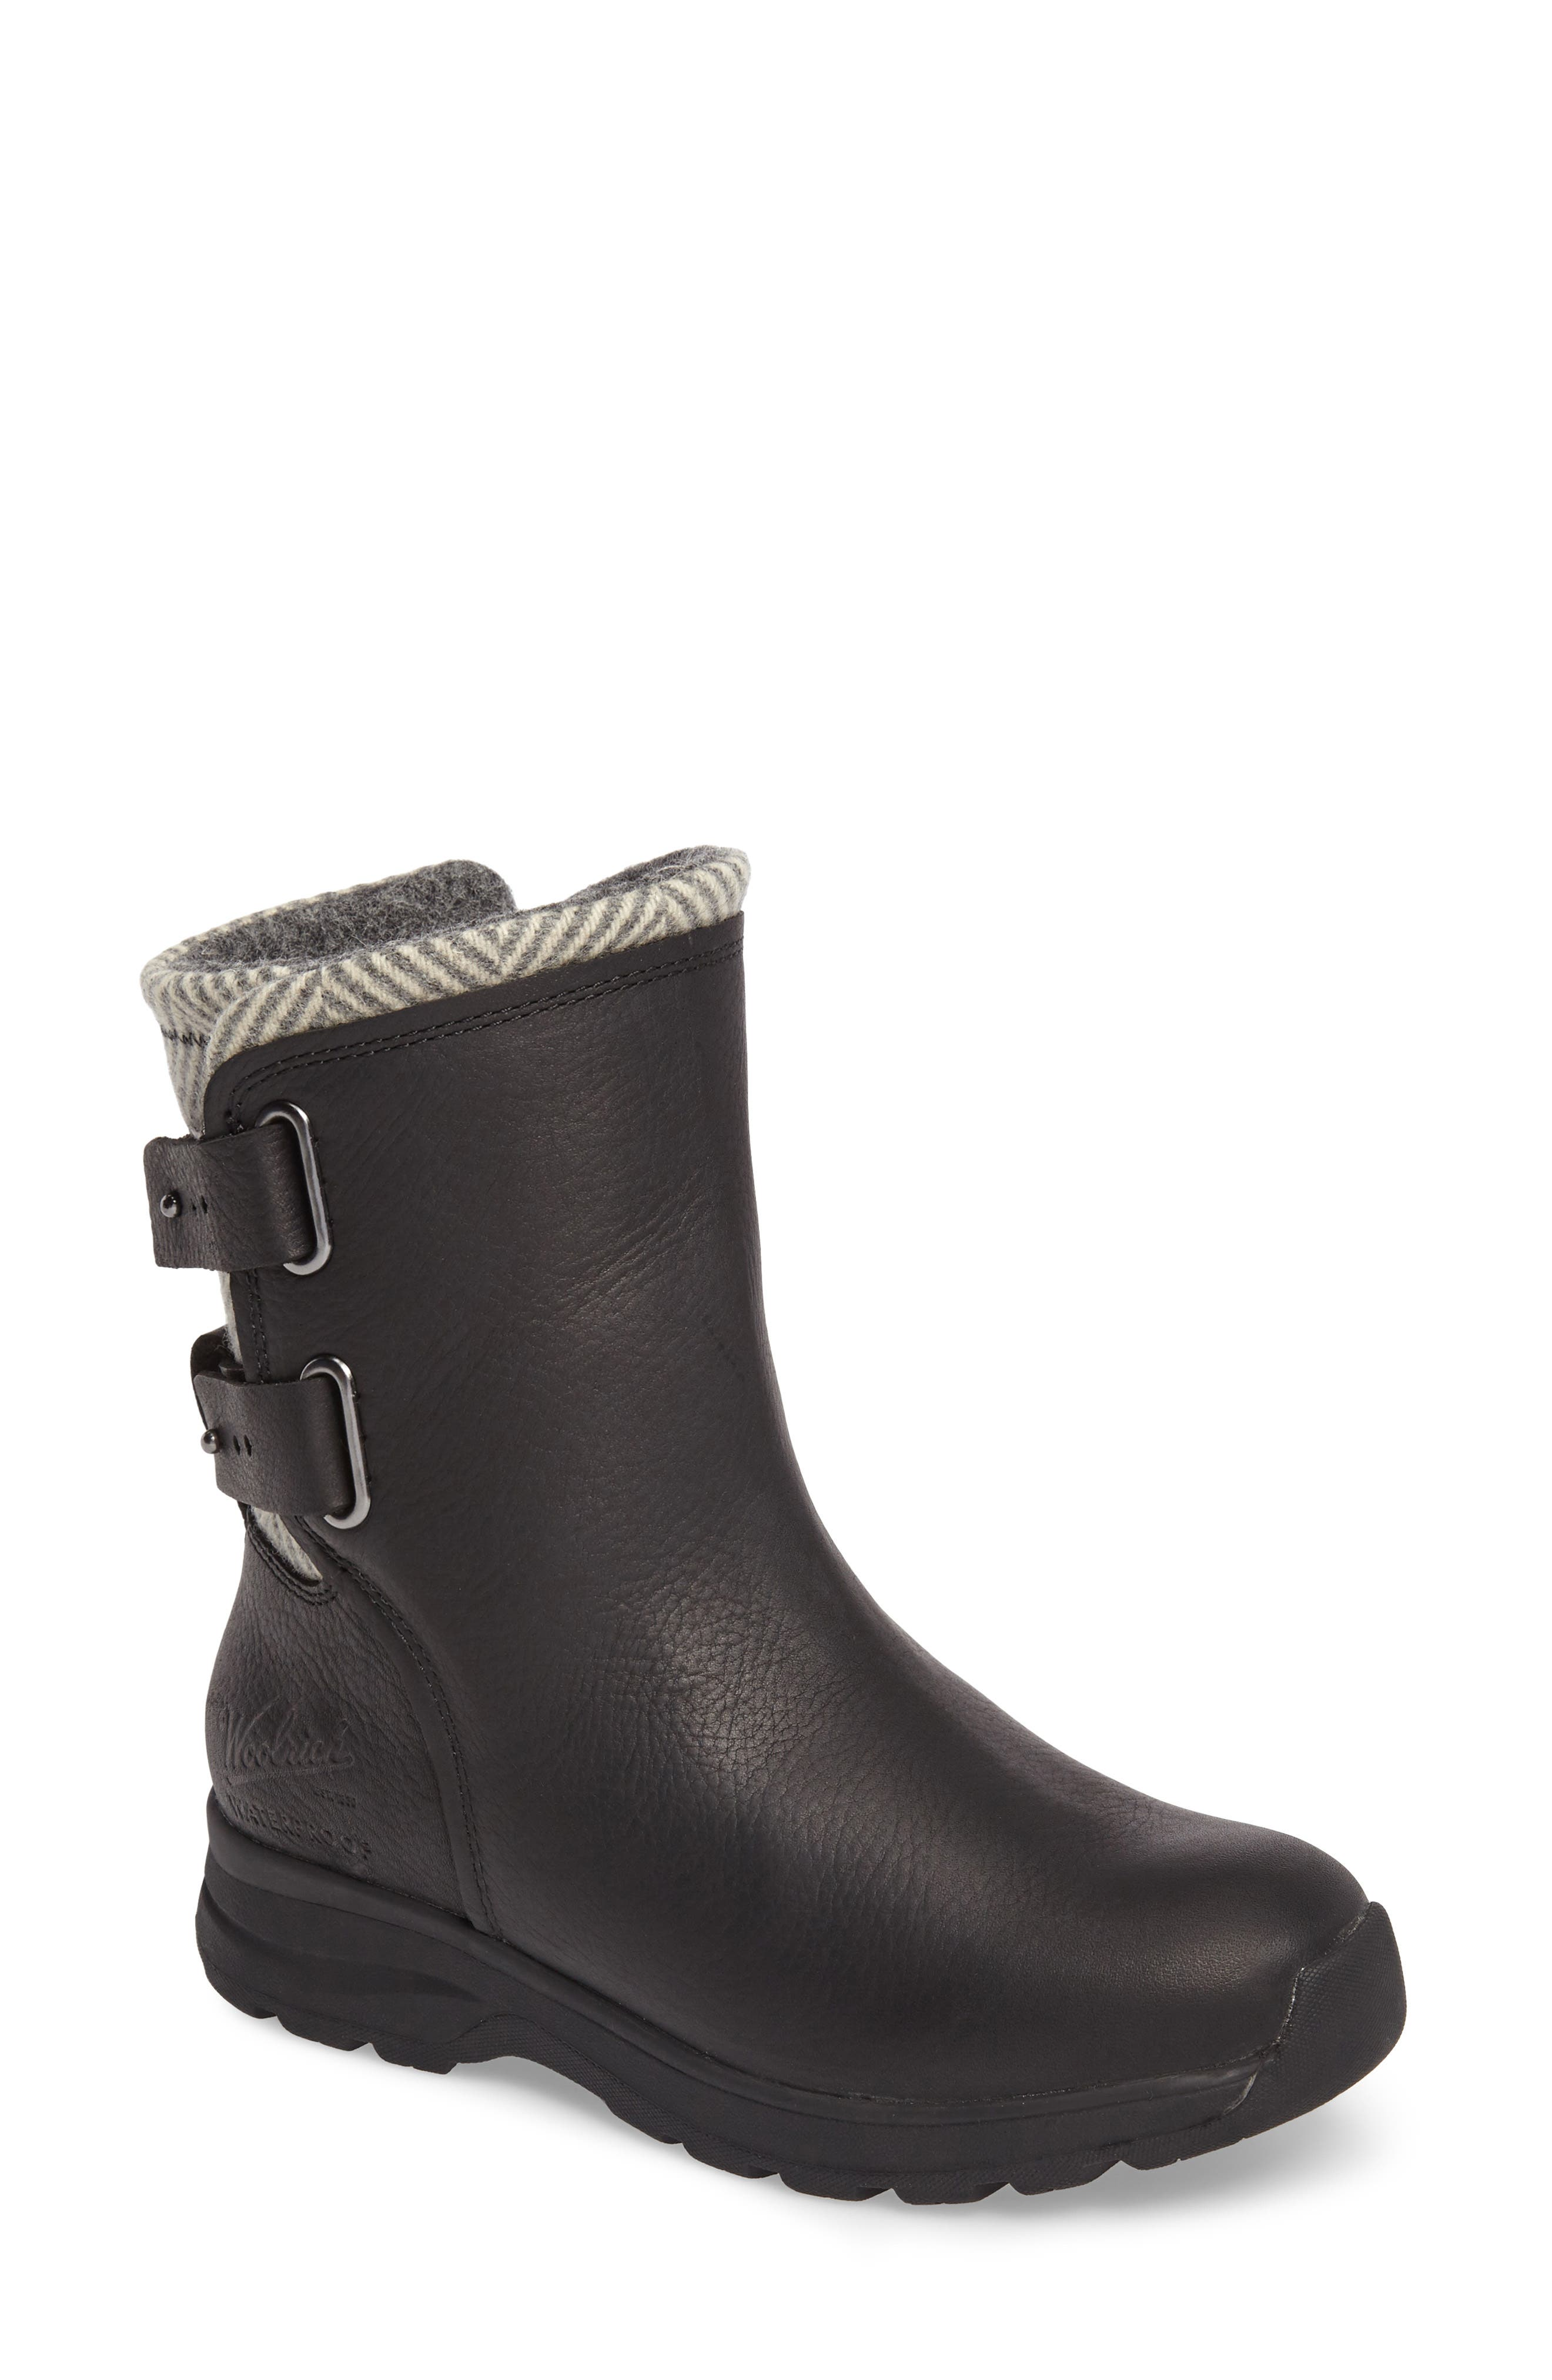 Koosa Waterproof Boot,                             Main thumbnail 1, color,                             Black Leather/ Herringbone